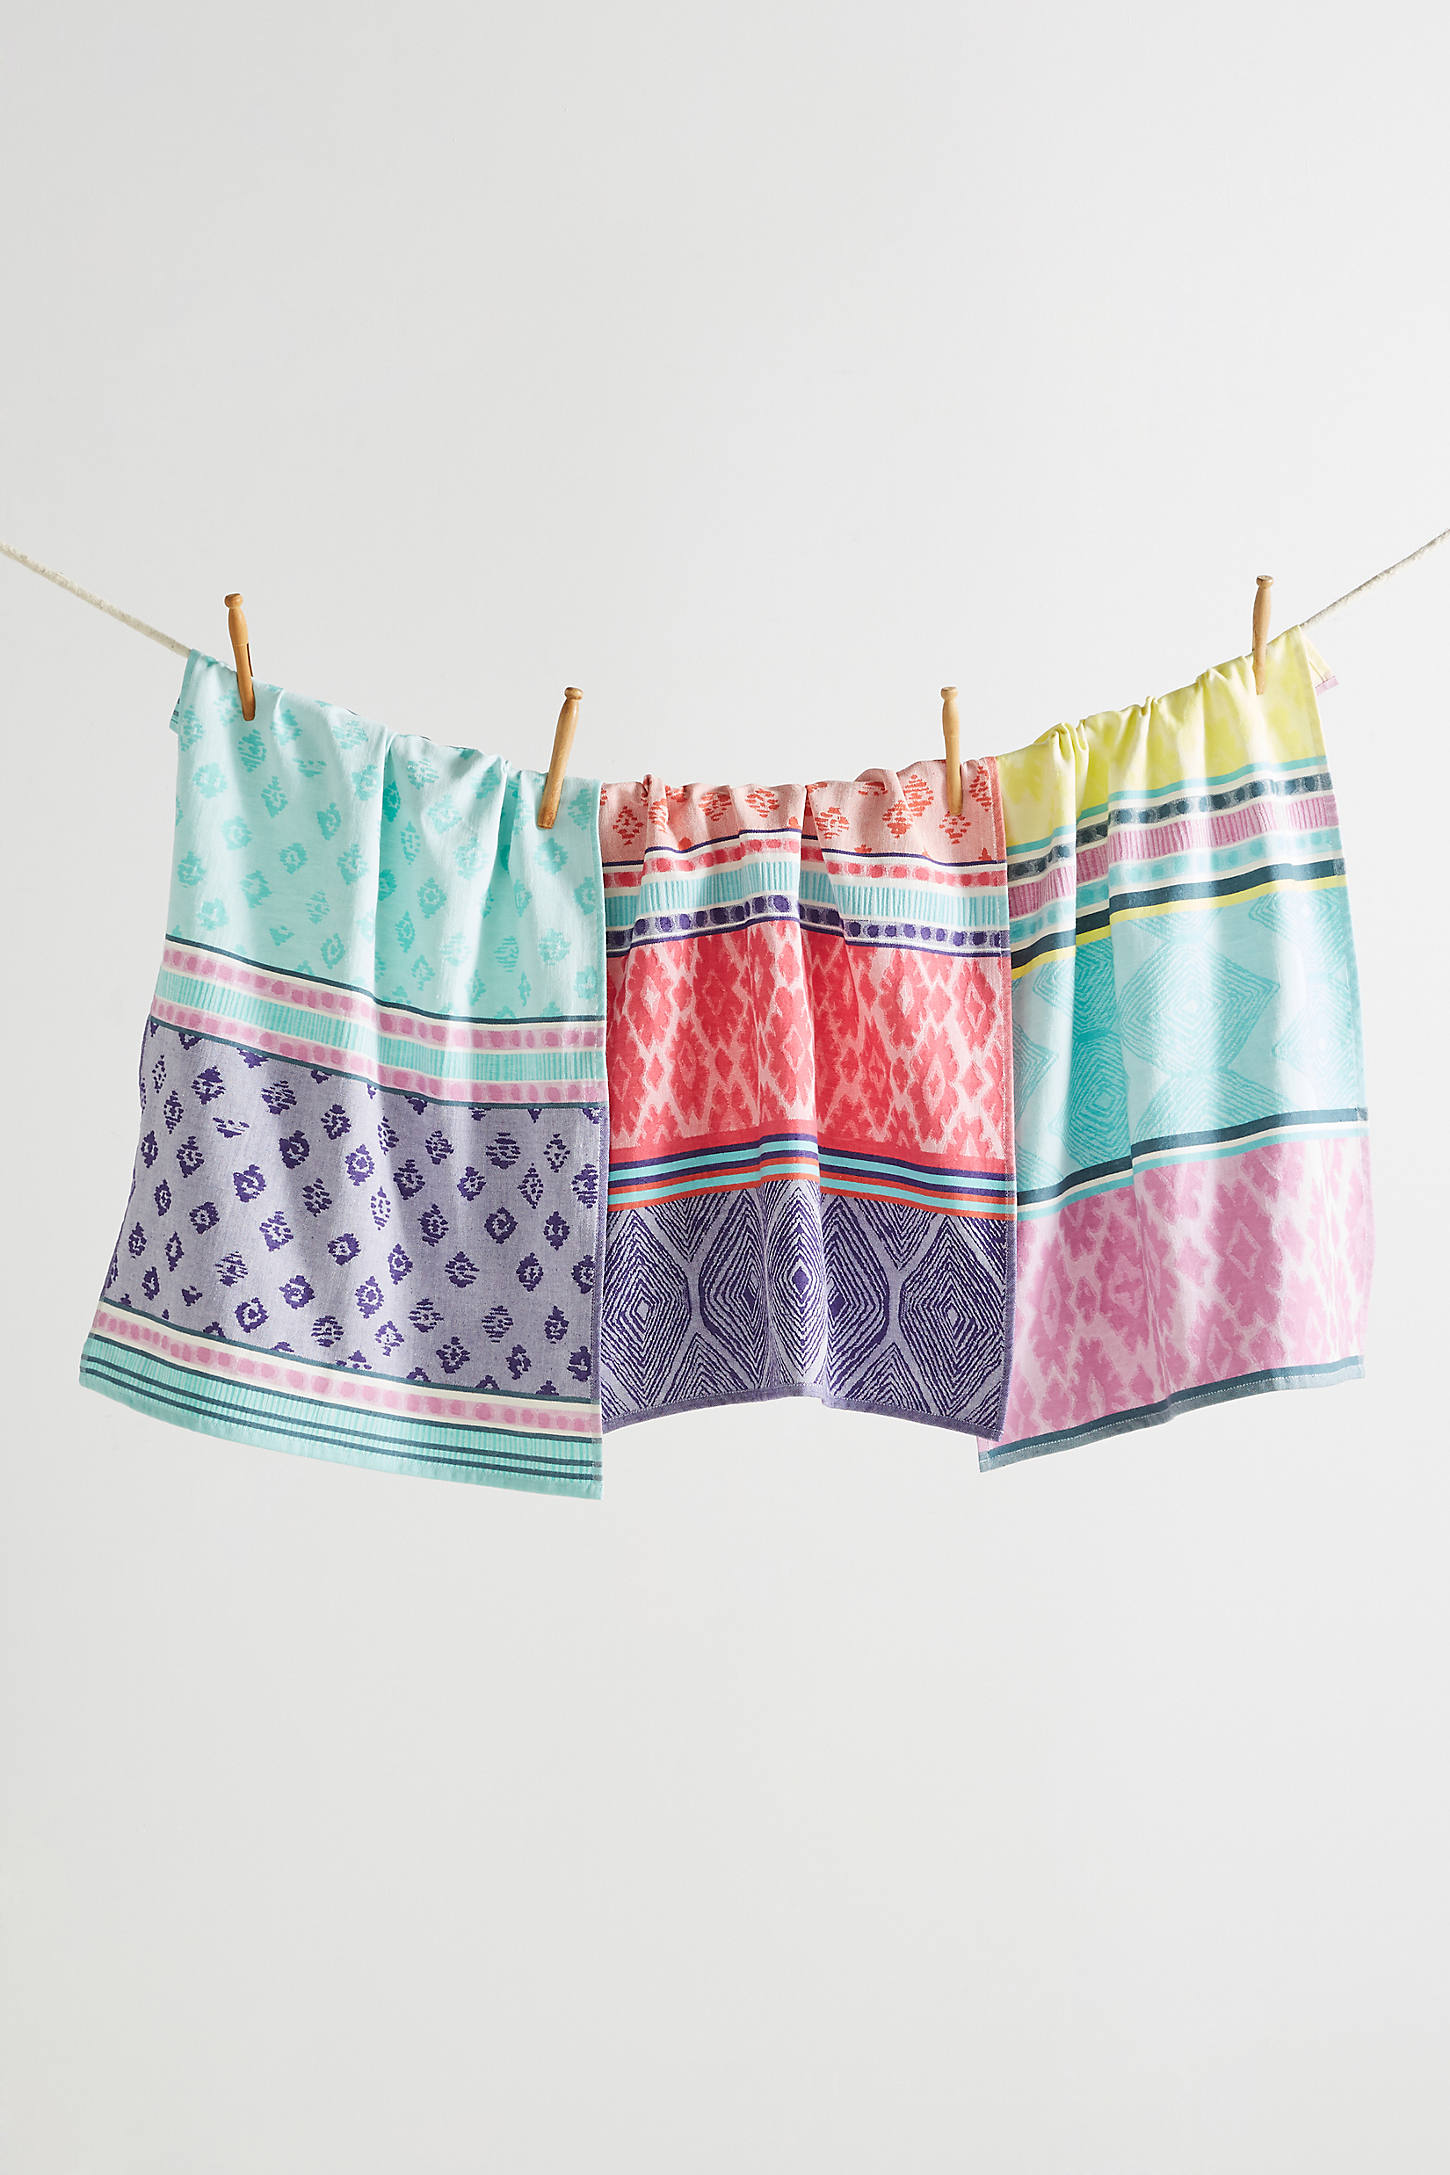 Bodrum Dish Towel Set